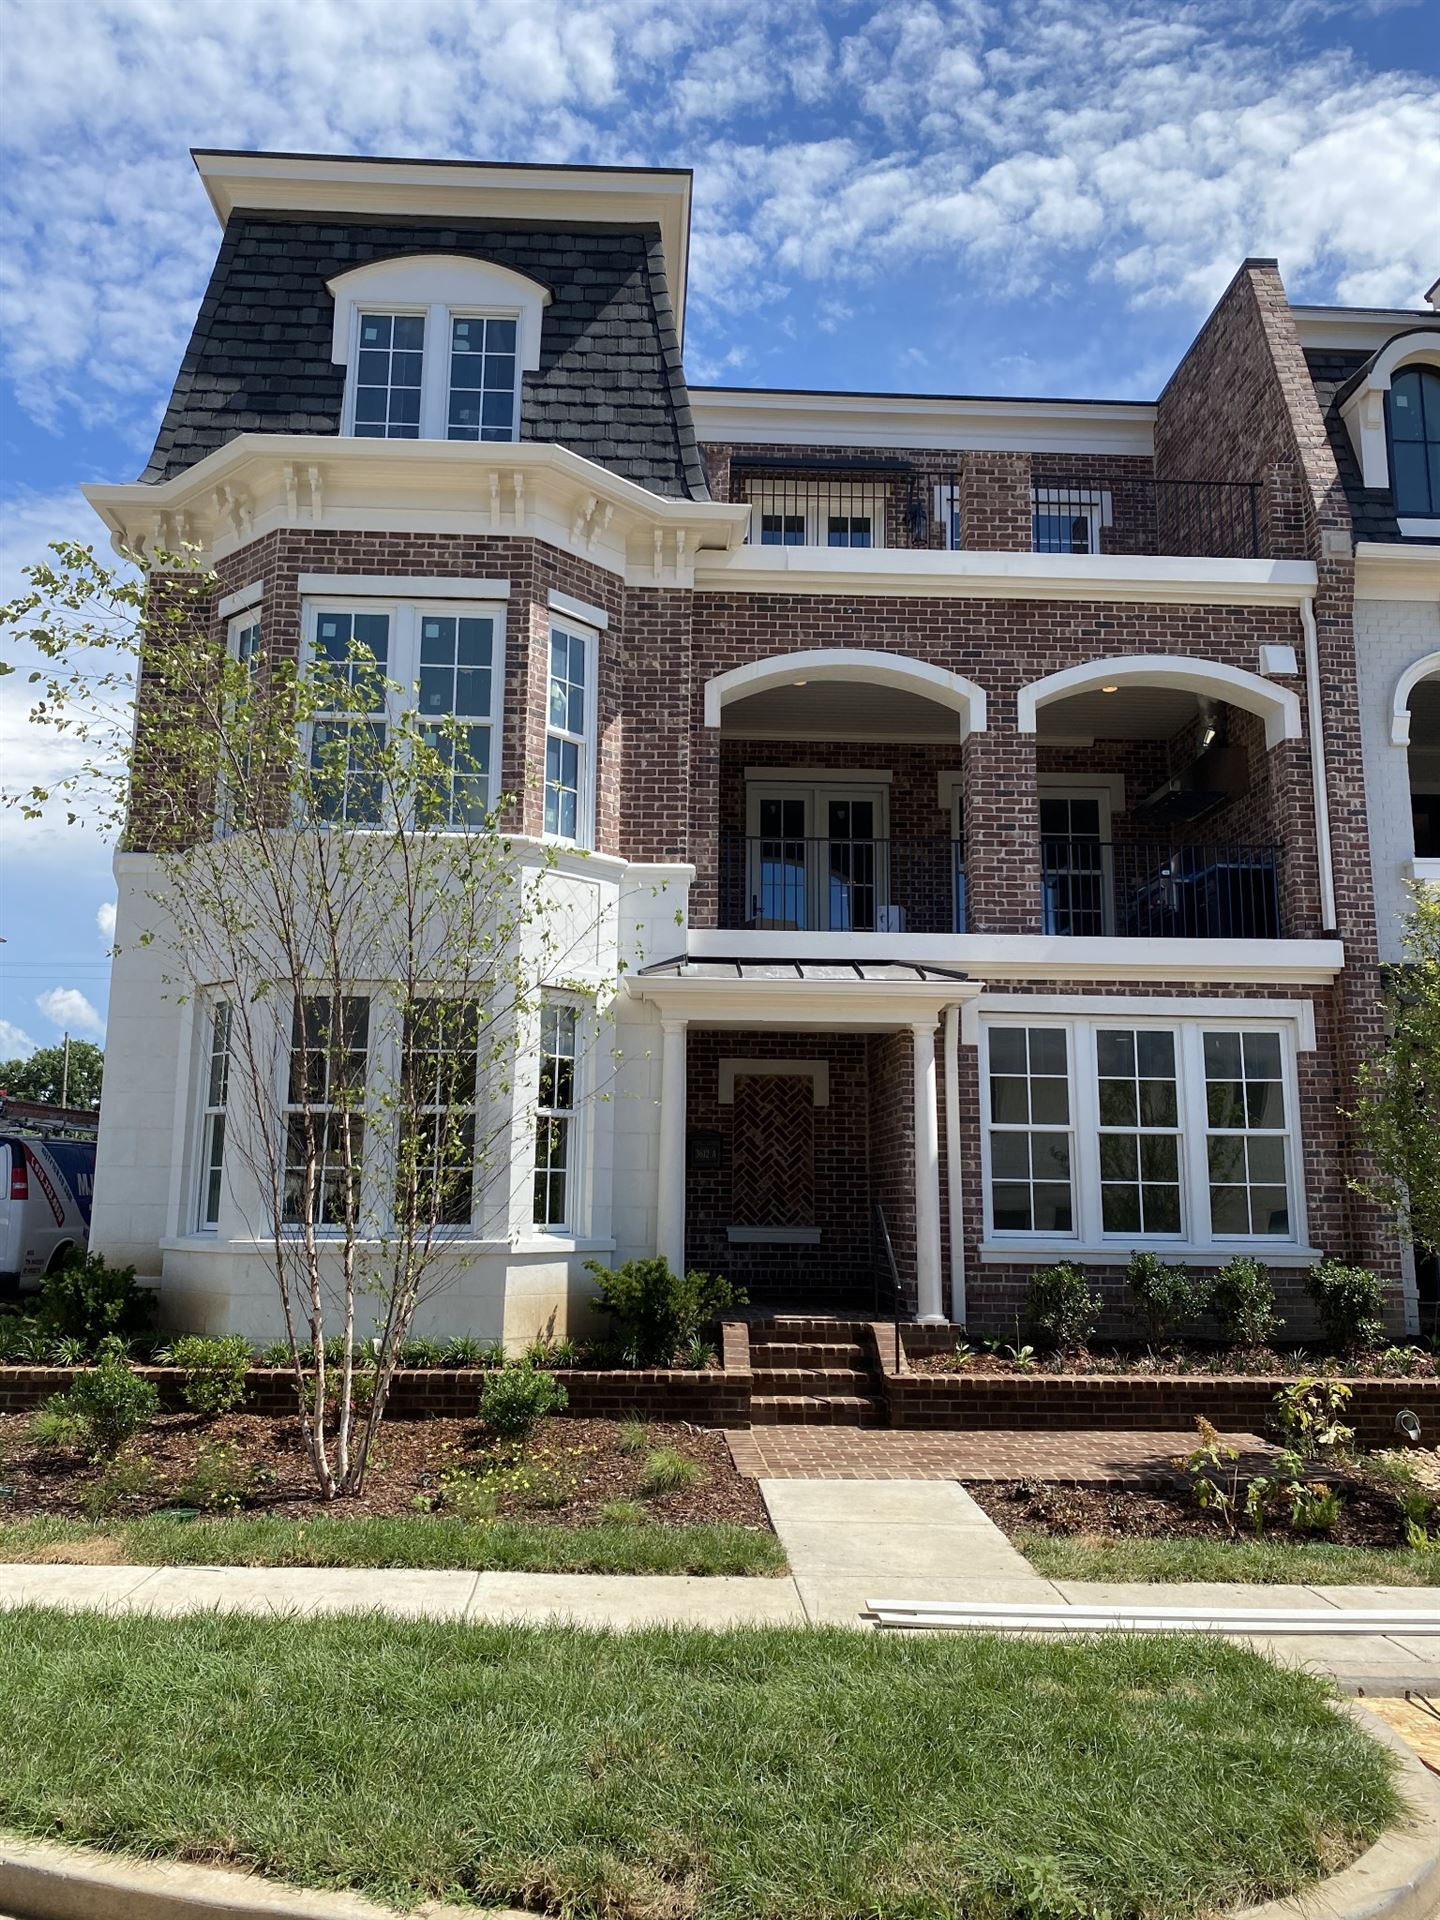 Photo of 3612A West End Ave (Lot #126), Nashville, TN 37205 (MLS # 2141657)